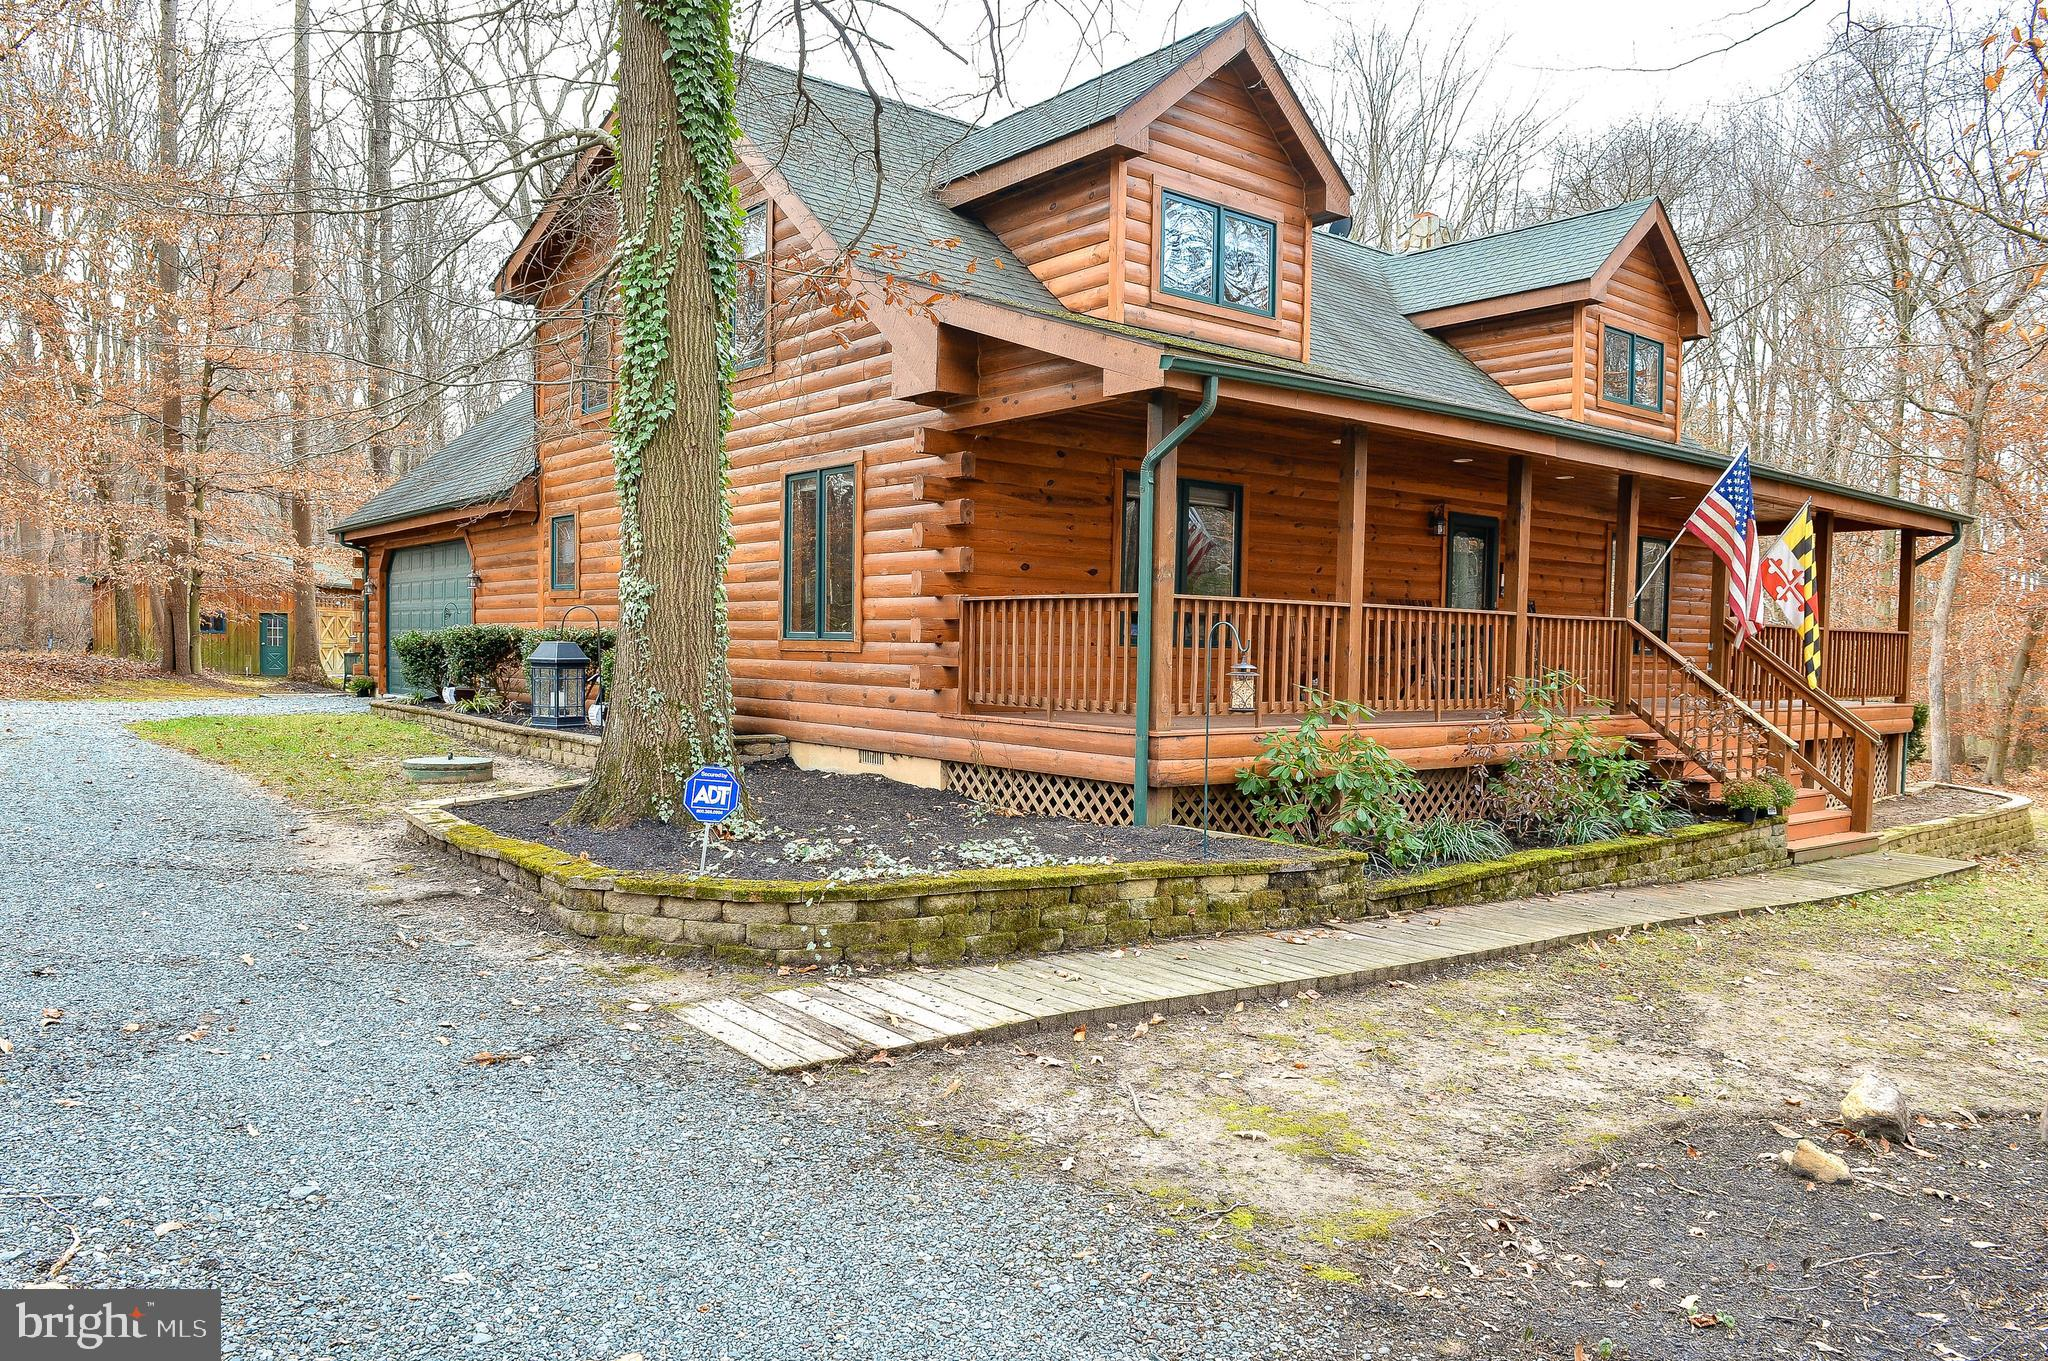 QUALITY BUILT SIMPSON LOG HOME WITH 2100+- SQ. FT. OF LIVING SPACE ON PRIVATE 4.44 ACRES. COUNTRY FR